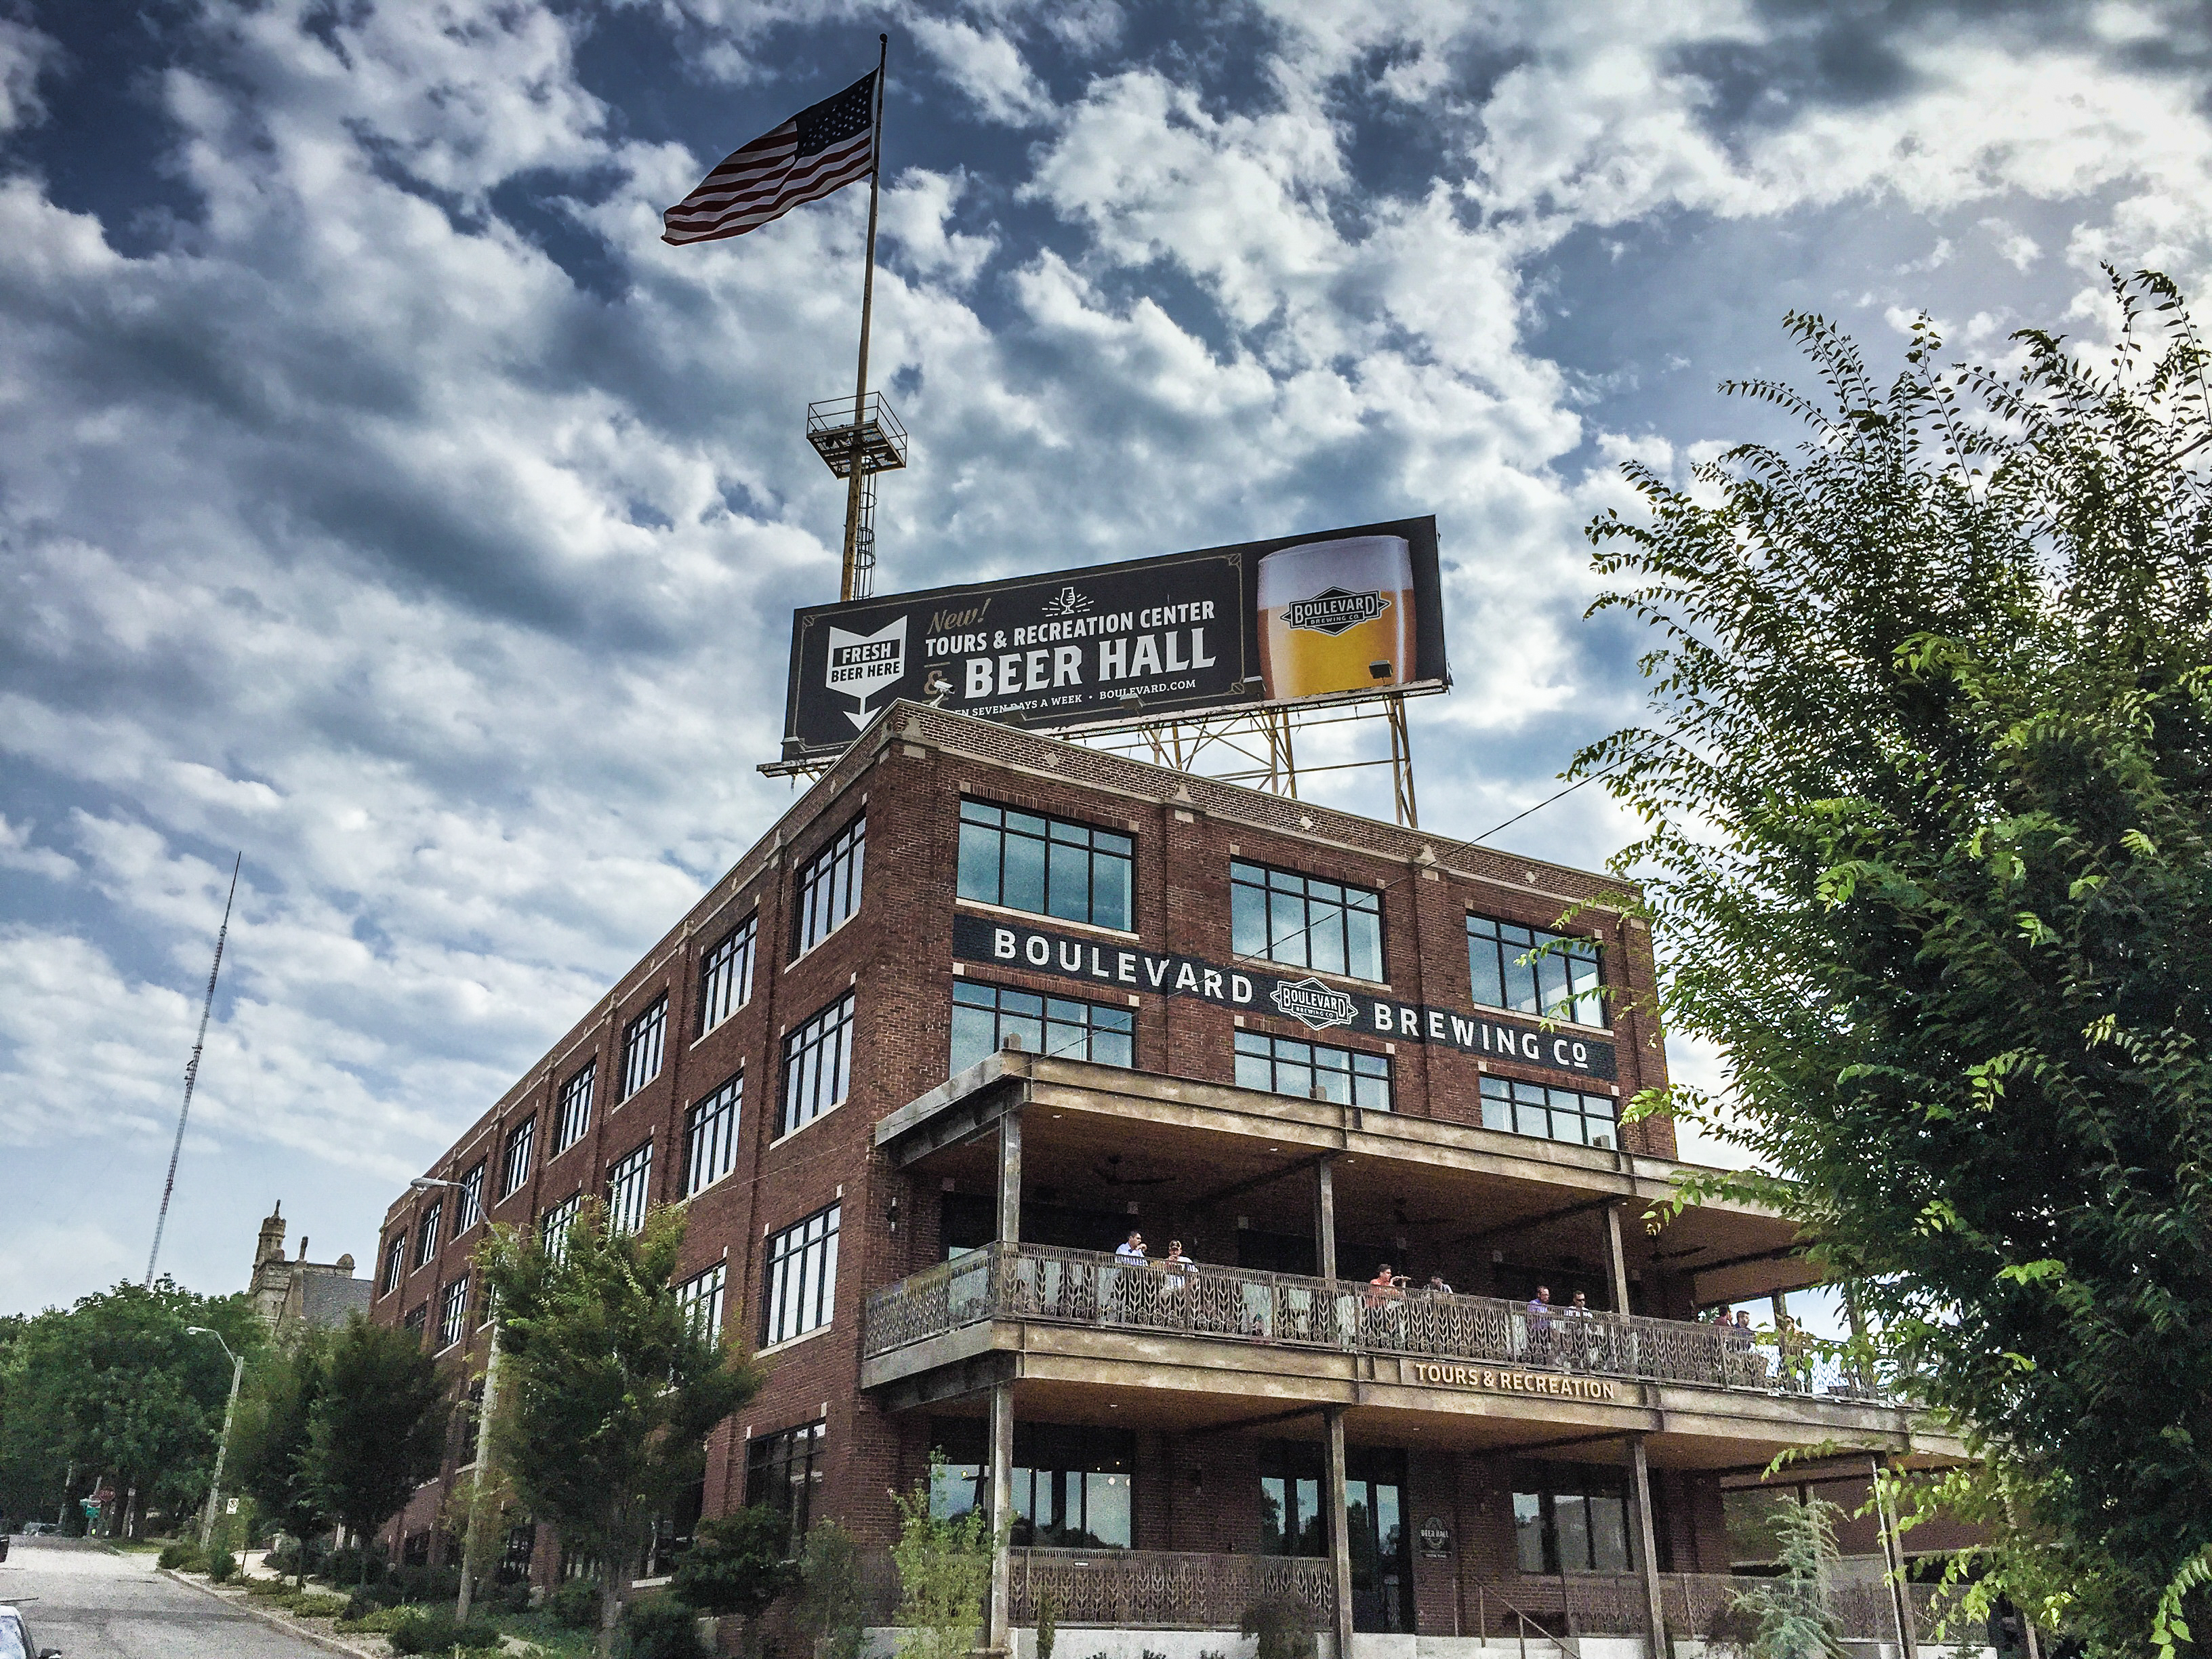 Boulevard Beer Hall Credit VisitKC